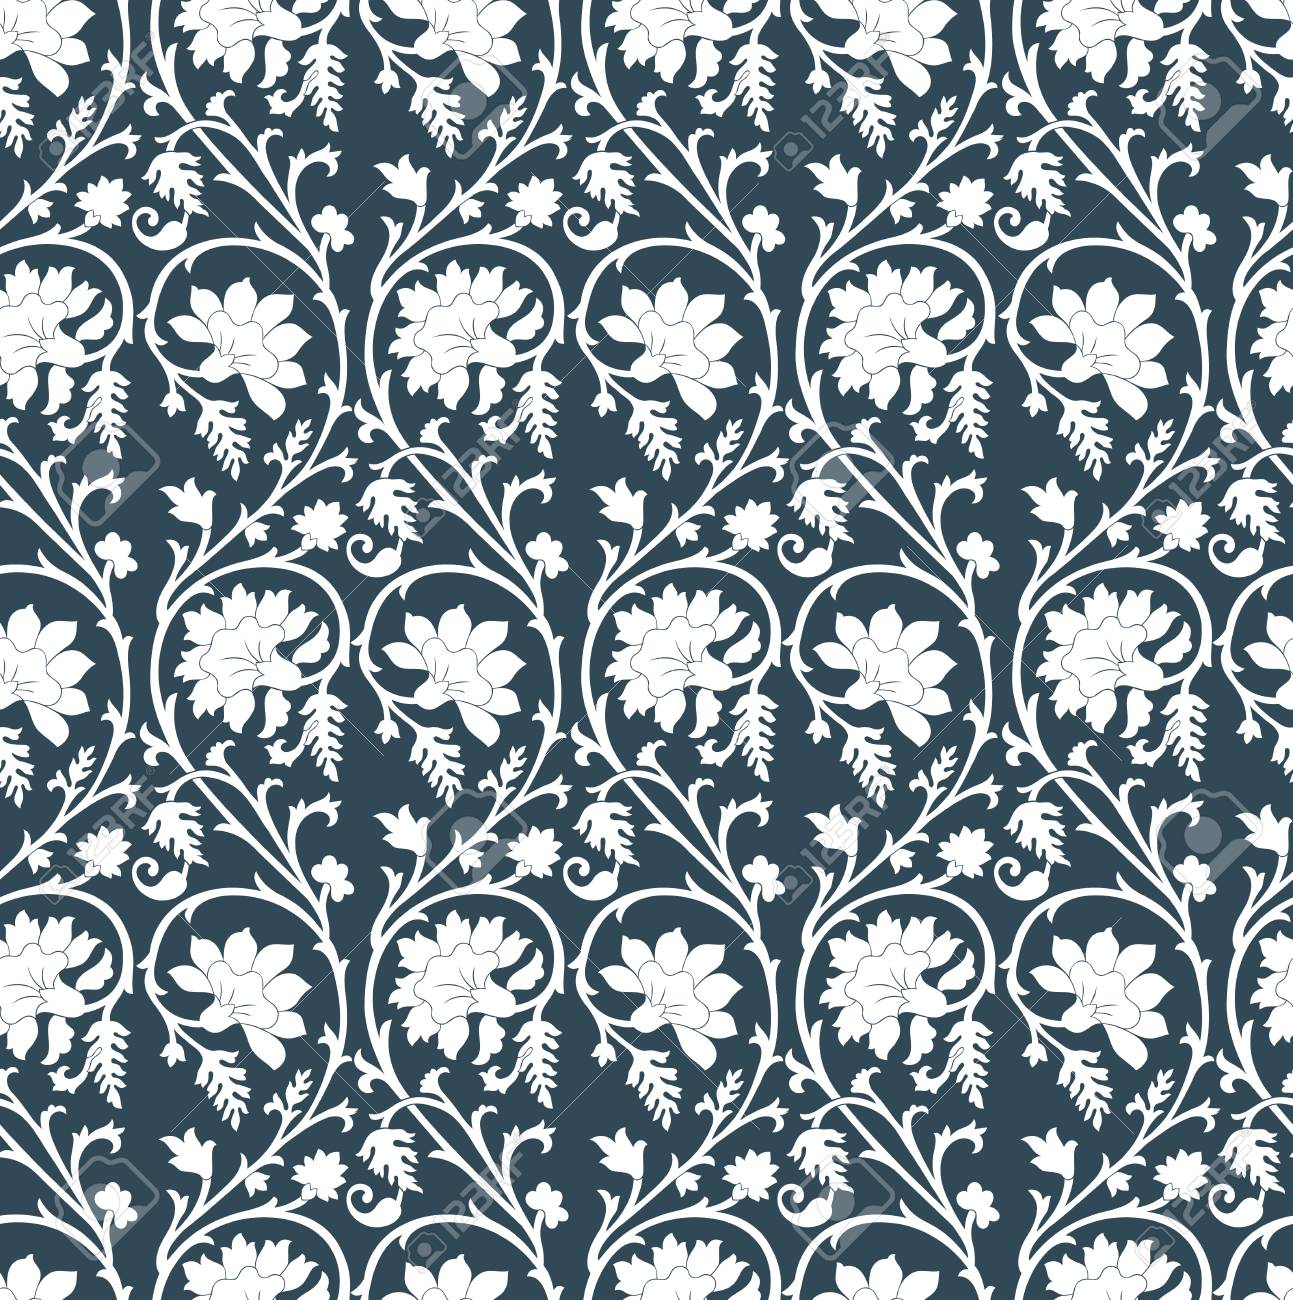 Seamless Floral Damask Wallpaper Royalty Free Cliparts Vectors